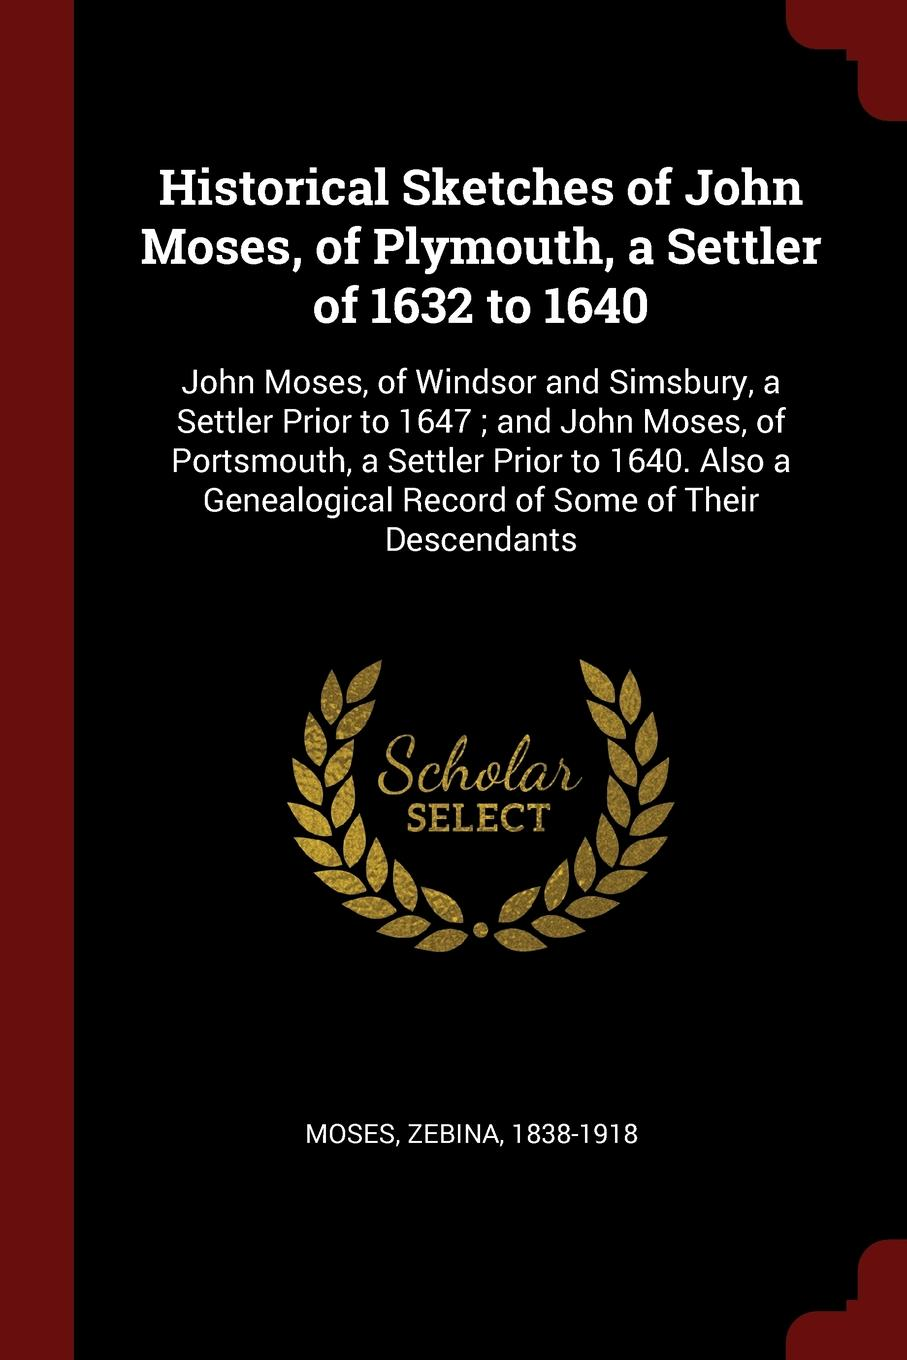 Moses Zebina 1838-1918 Historical Sketches of John Moses, of Plymouth, a Settler of 1632 to 1640. John Moses, of Windsor and Simsbury, a Settler Prior to 1647 ; and John Moses, of Portsmouth, a Settler Prior to 1640. Also a Genealogical Record of Some of Their Descendants the moses of rovno